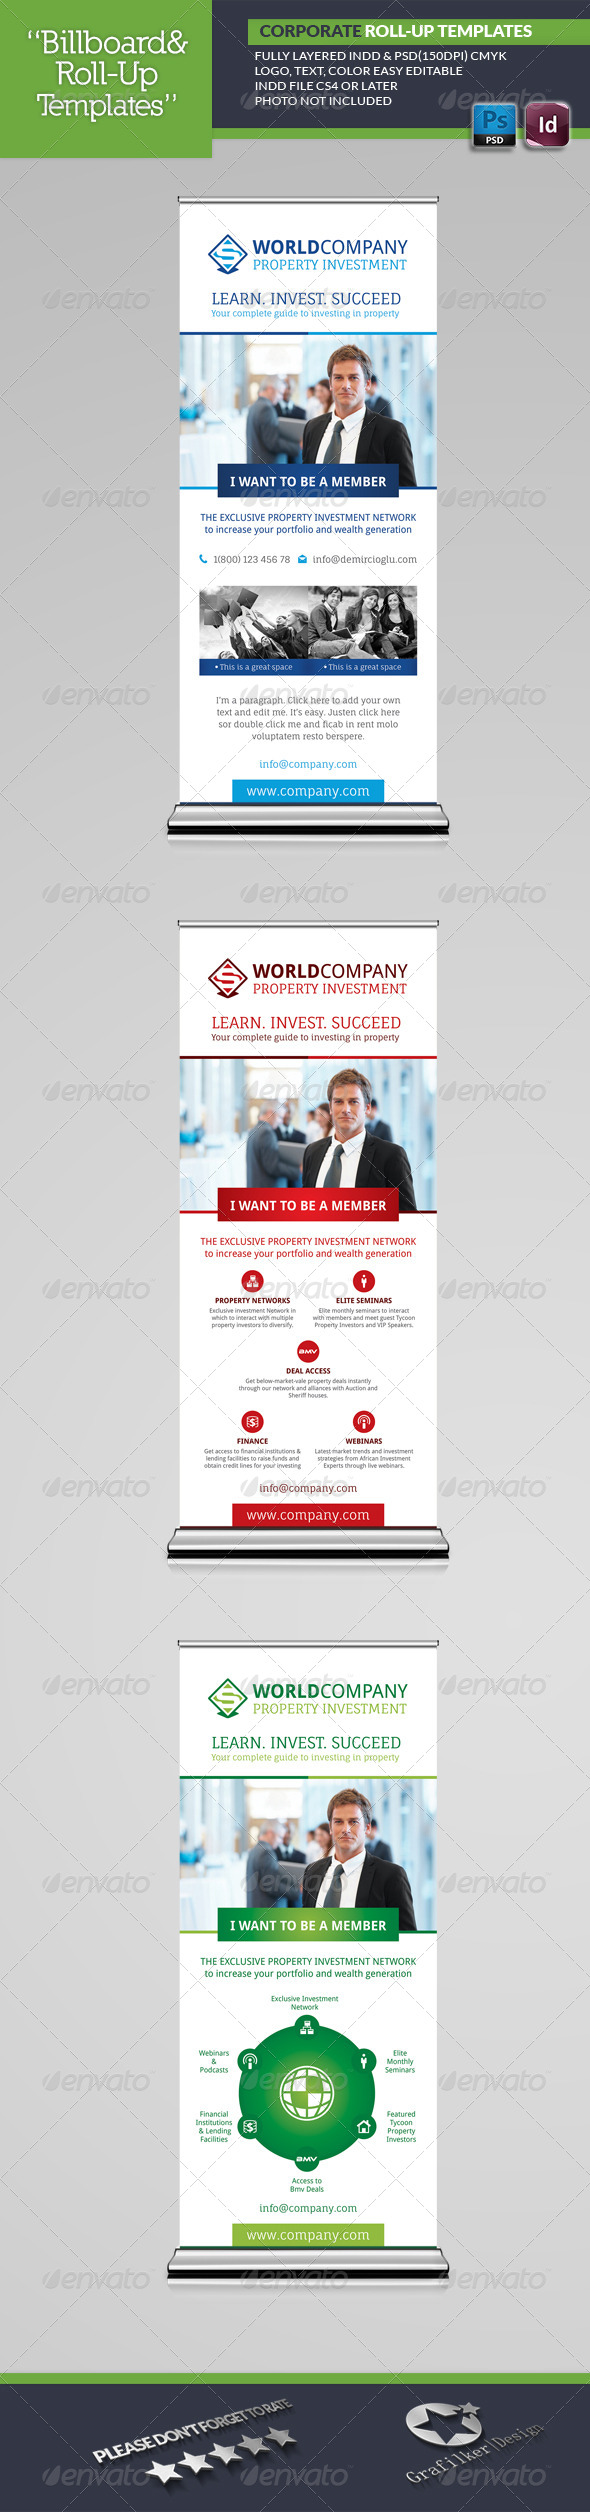 Corporate Roll-Up Templates - Signage Print Templates